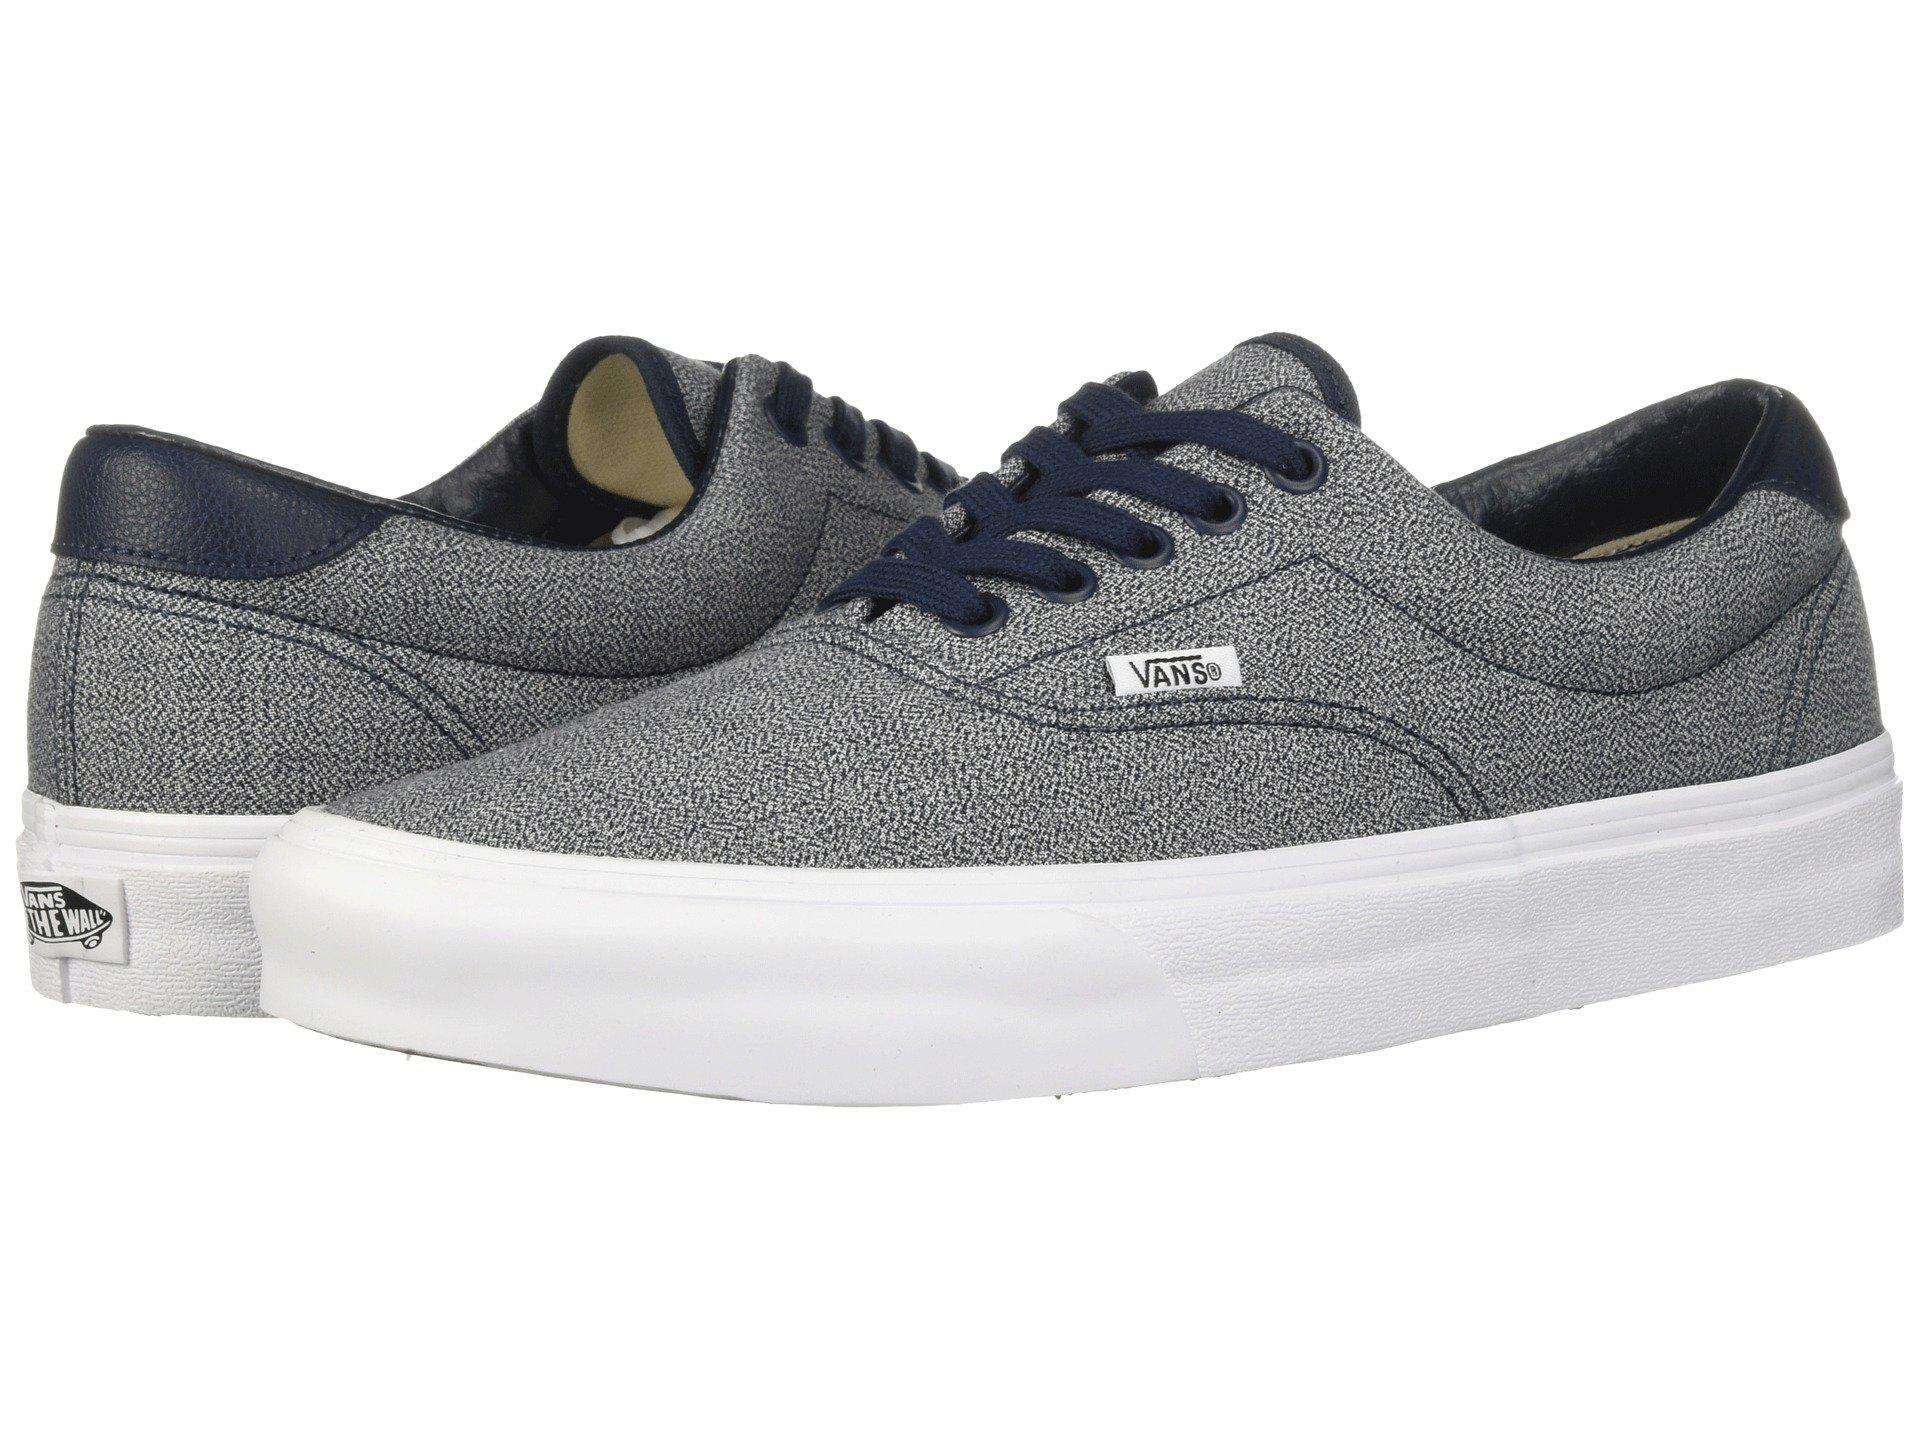 da49fdcc18 Lyst - Vans Era 59 ((c l) Frost Gray acid Denim) Skate Shoes for Men